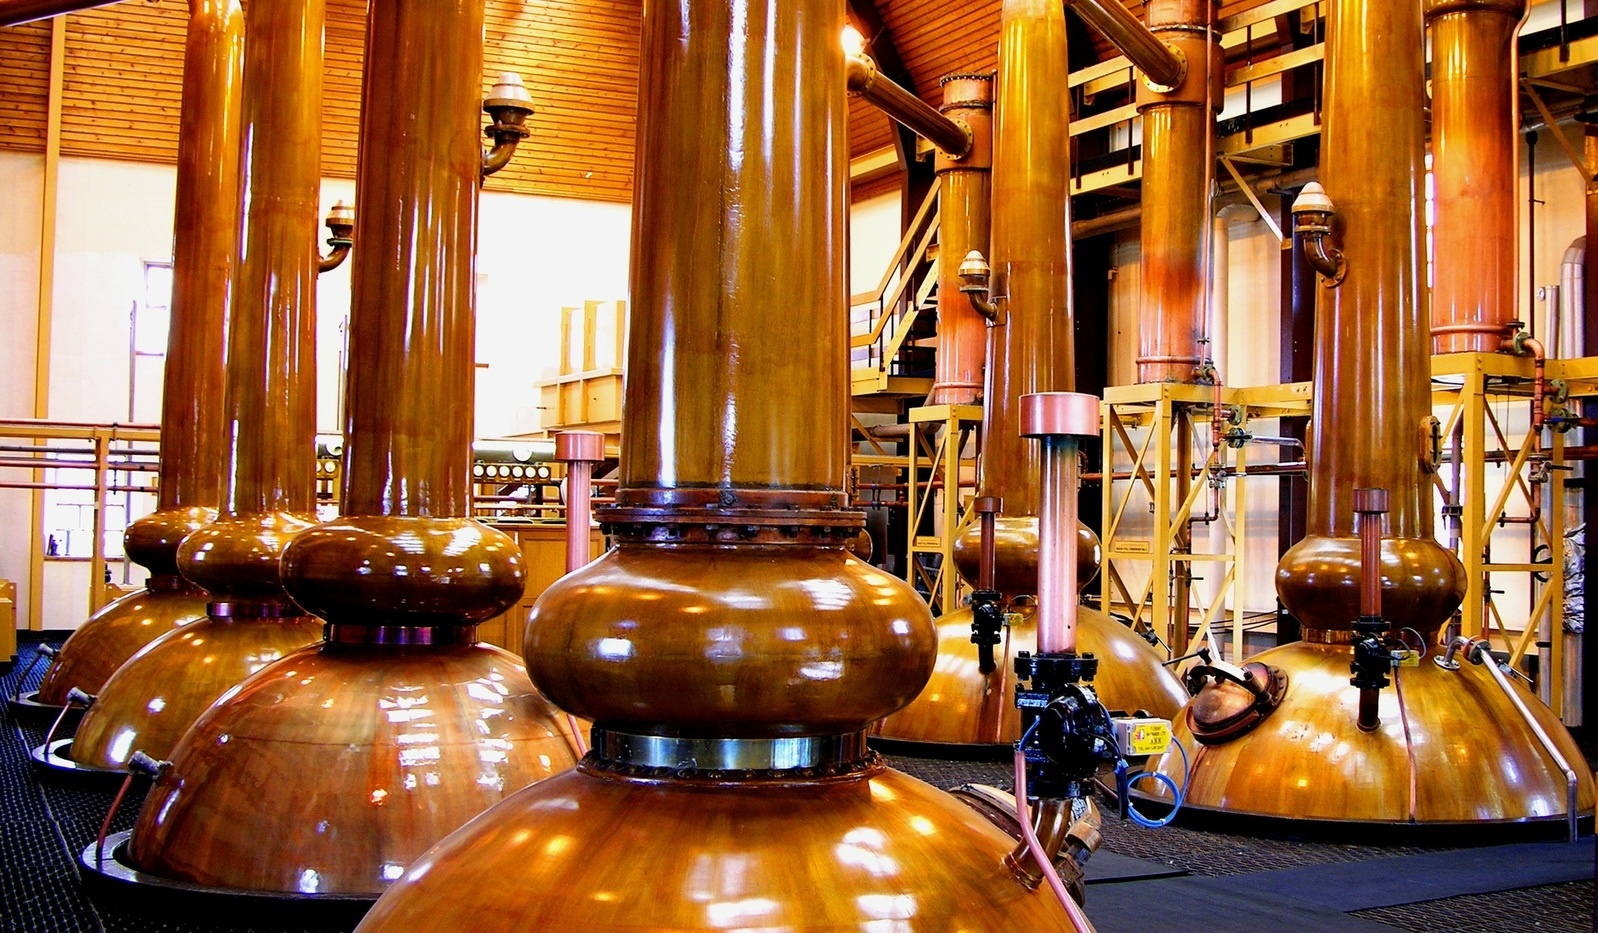 whiskey-stills-1323973-1598x932.jpg